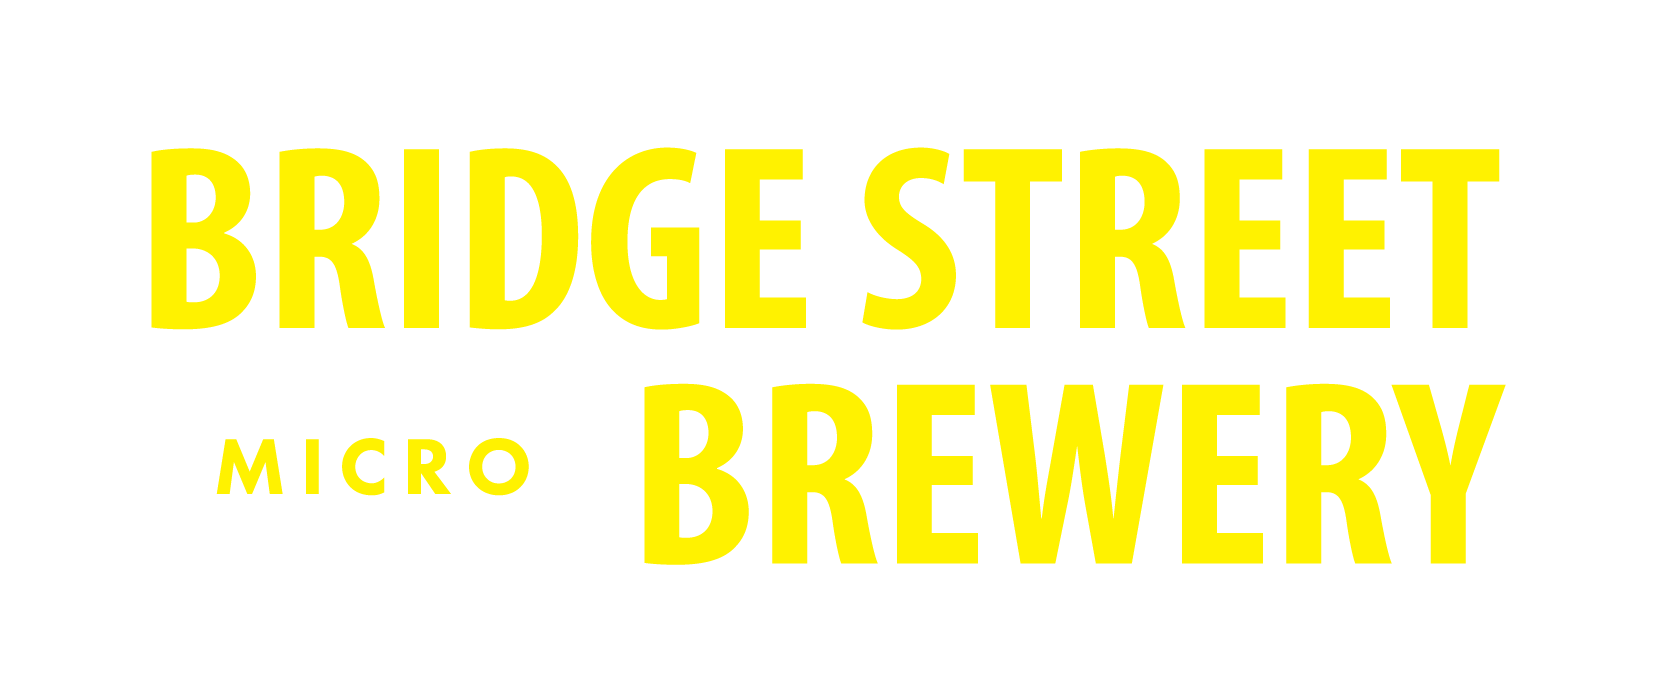 Bridge Street Brewery Logo